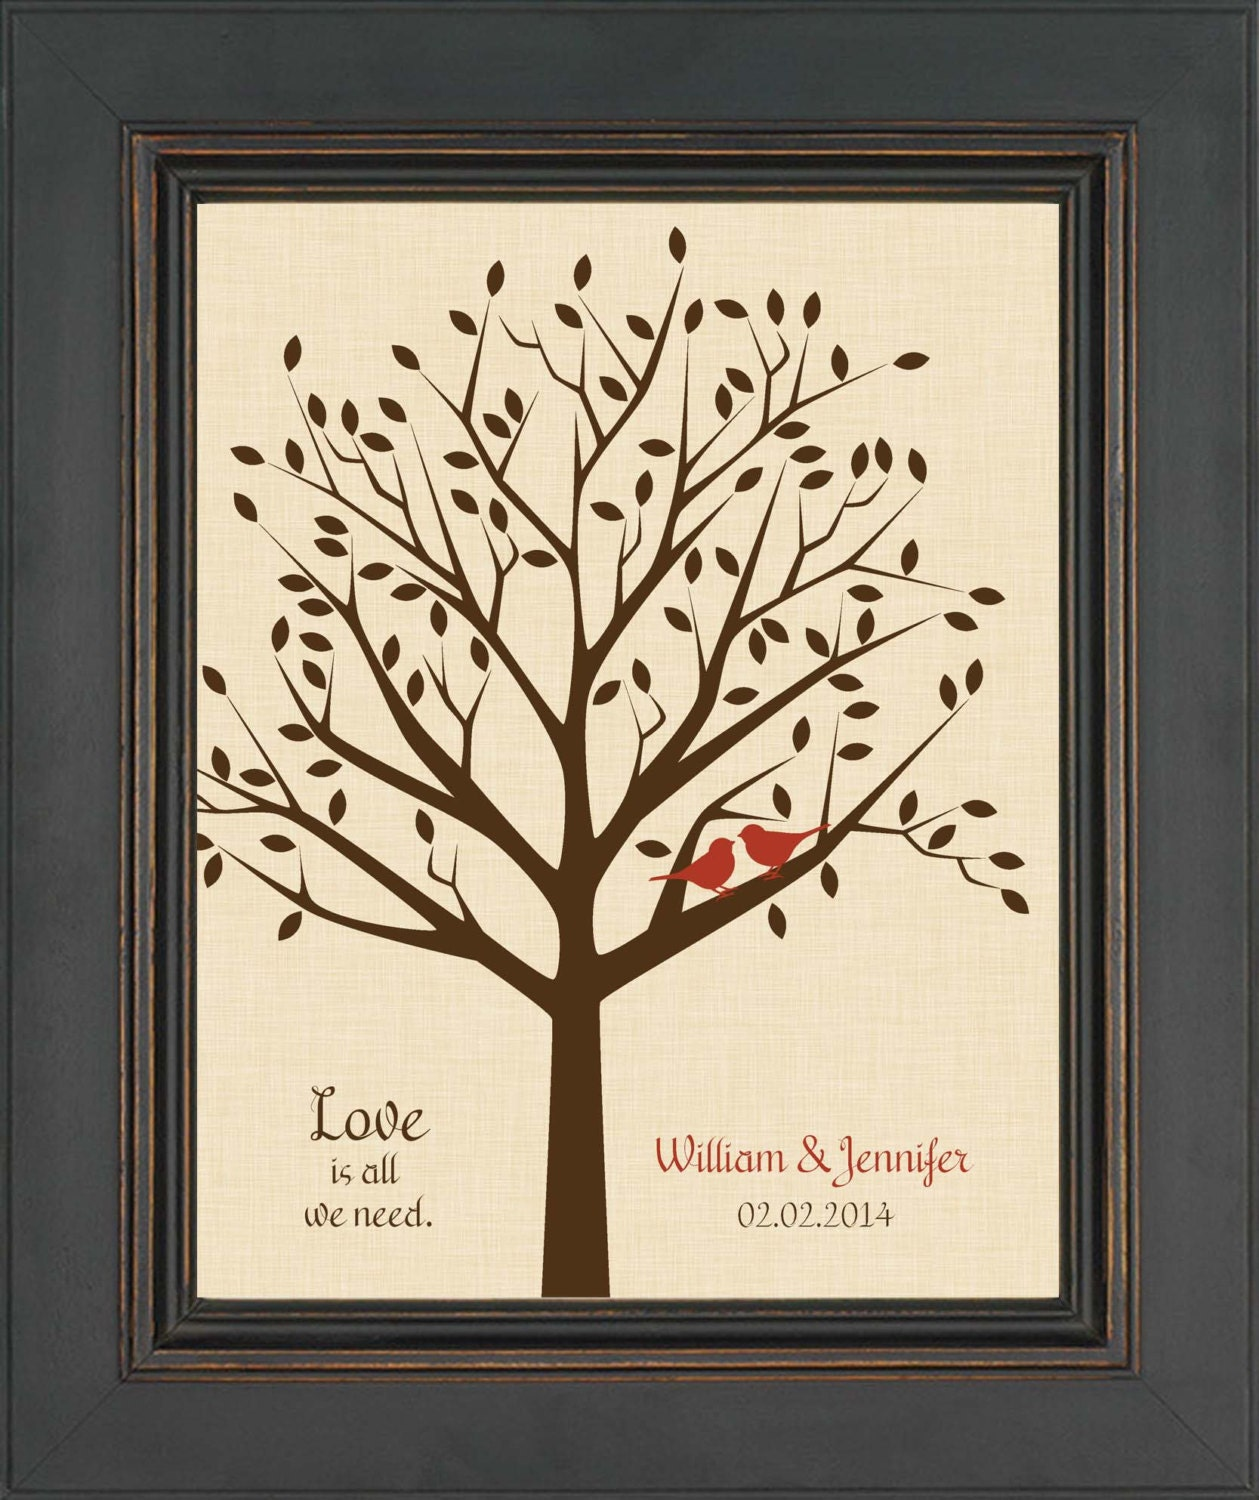 Unique Wedding Gifts For Couples: Personalized Wedding Gift For Couple Valentine's Day